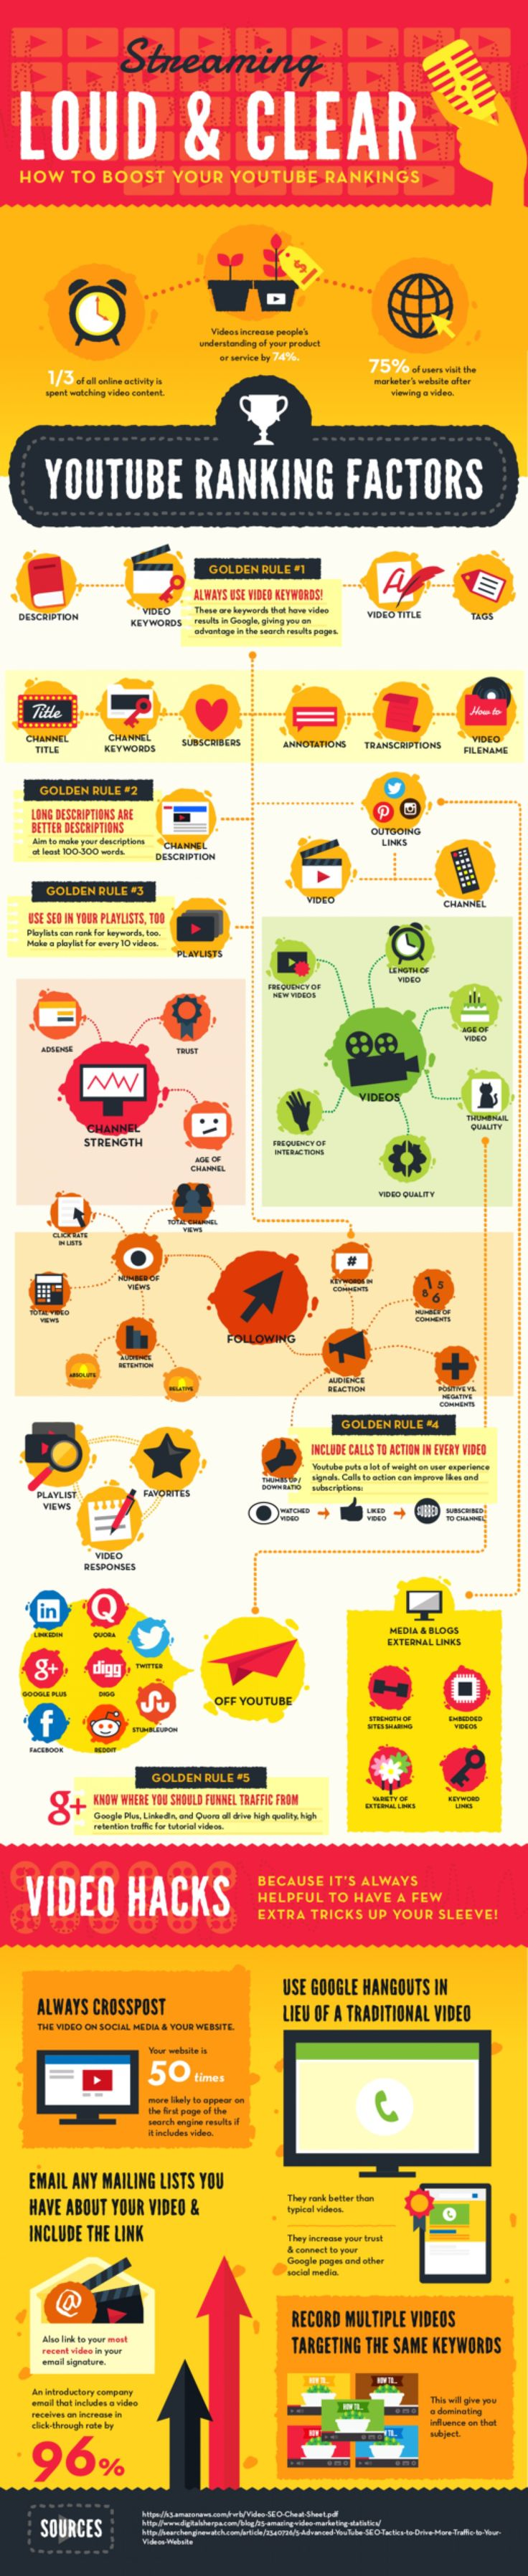 How To Boost Your #Youtube Rankings | #infographic #Infografia #contentmarketing…